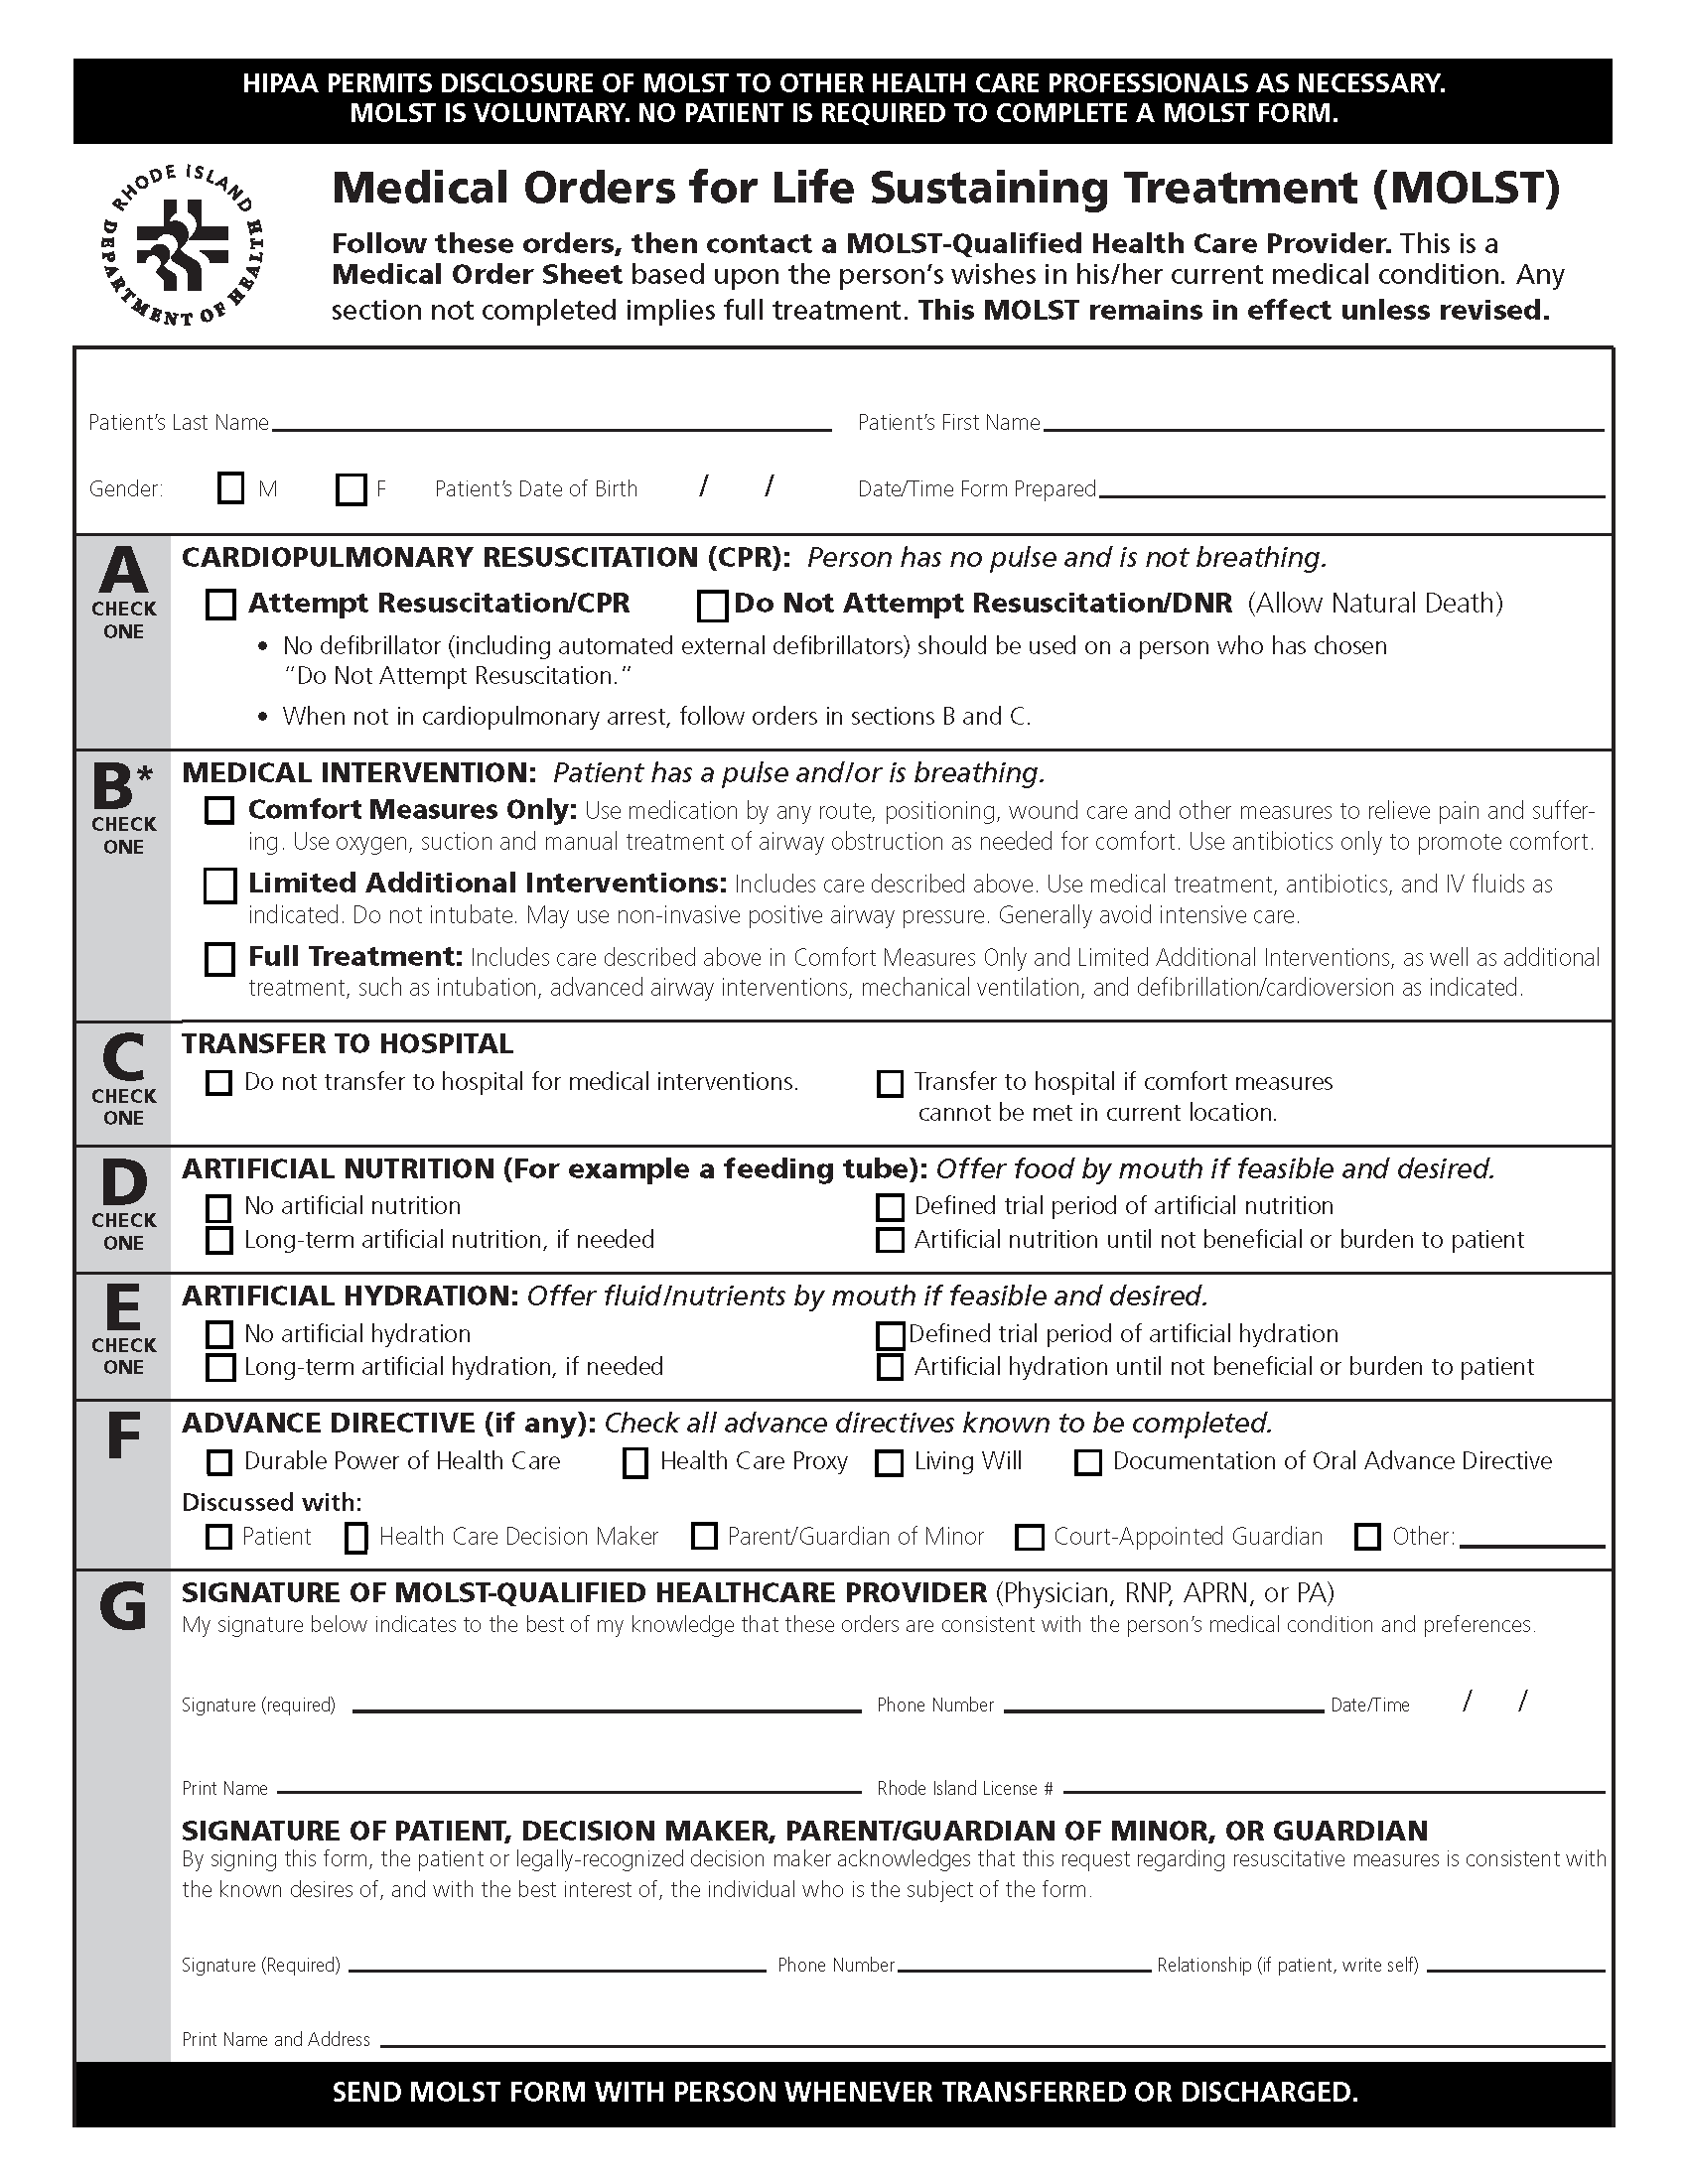 Rhode Island Living Will Form Free Printable Legal Forms